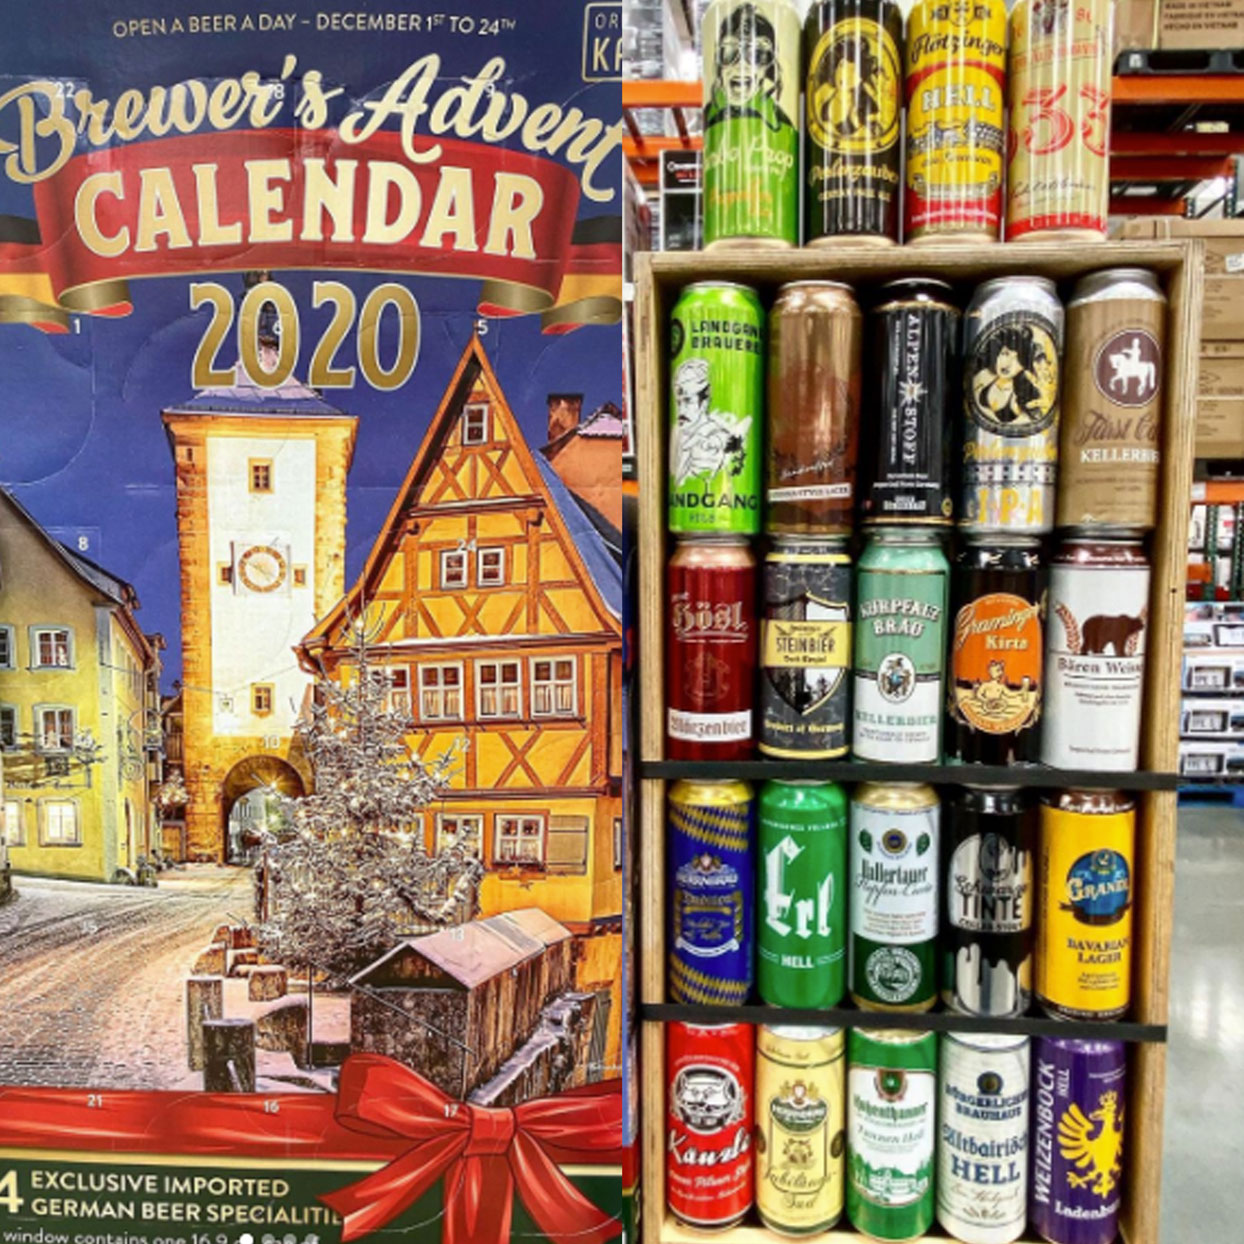 Costco's Brewer Advent Calendar